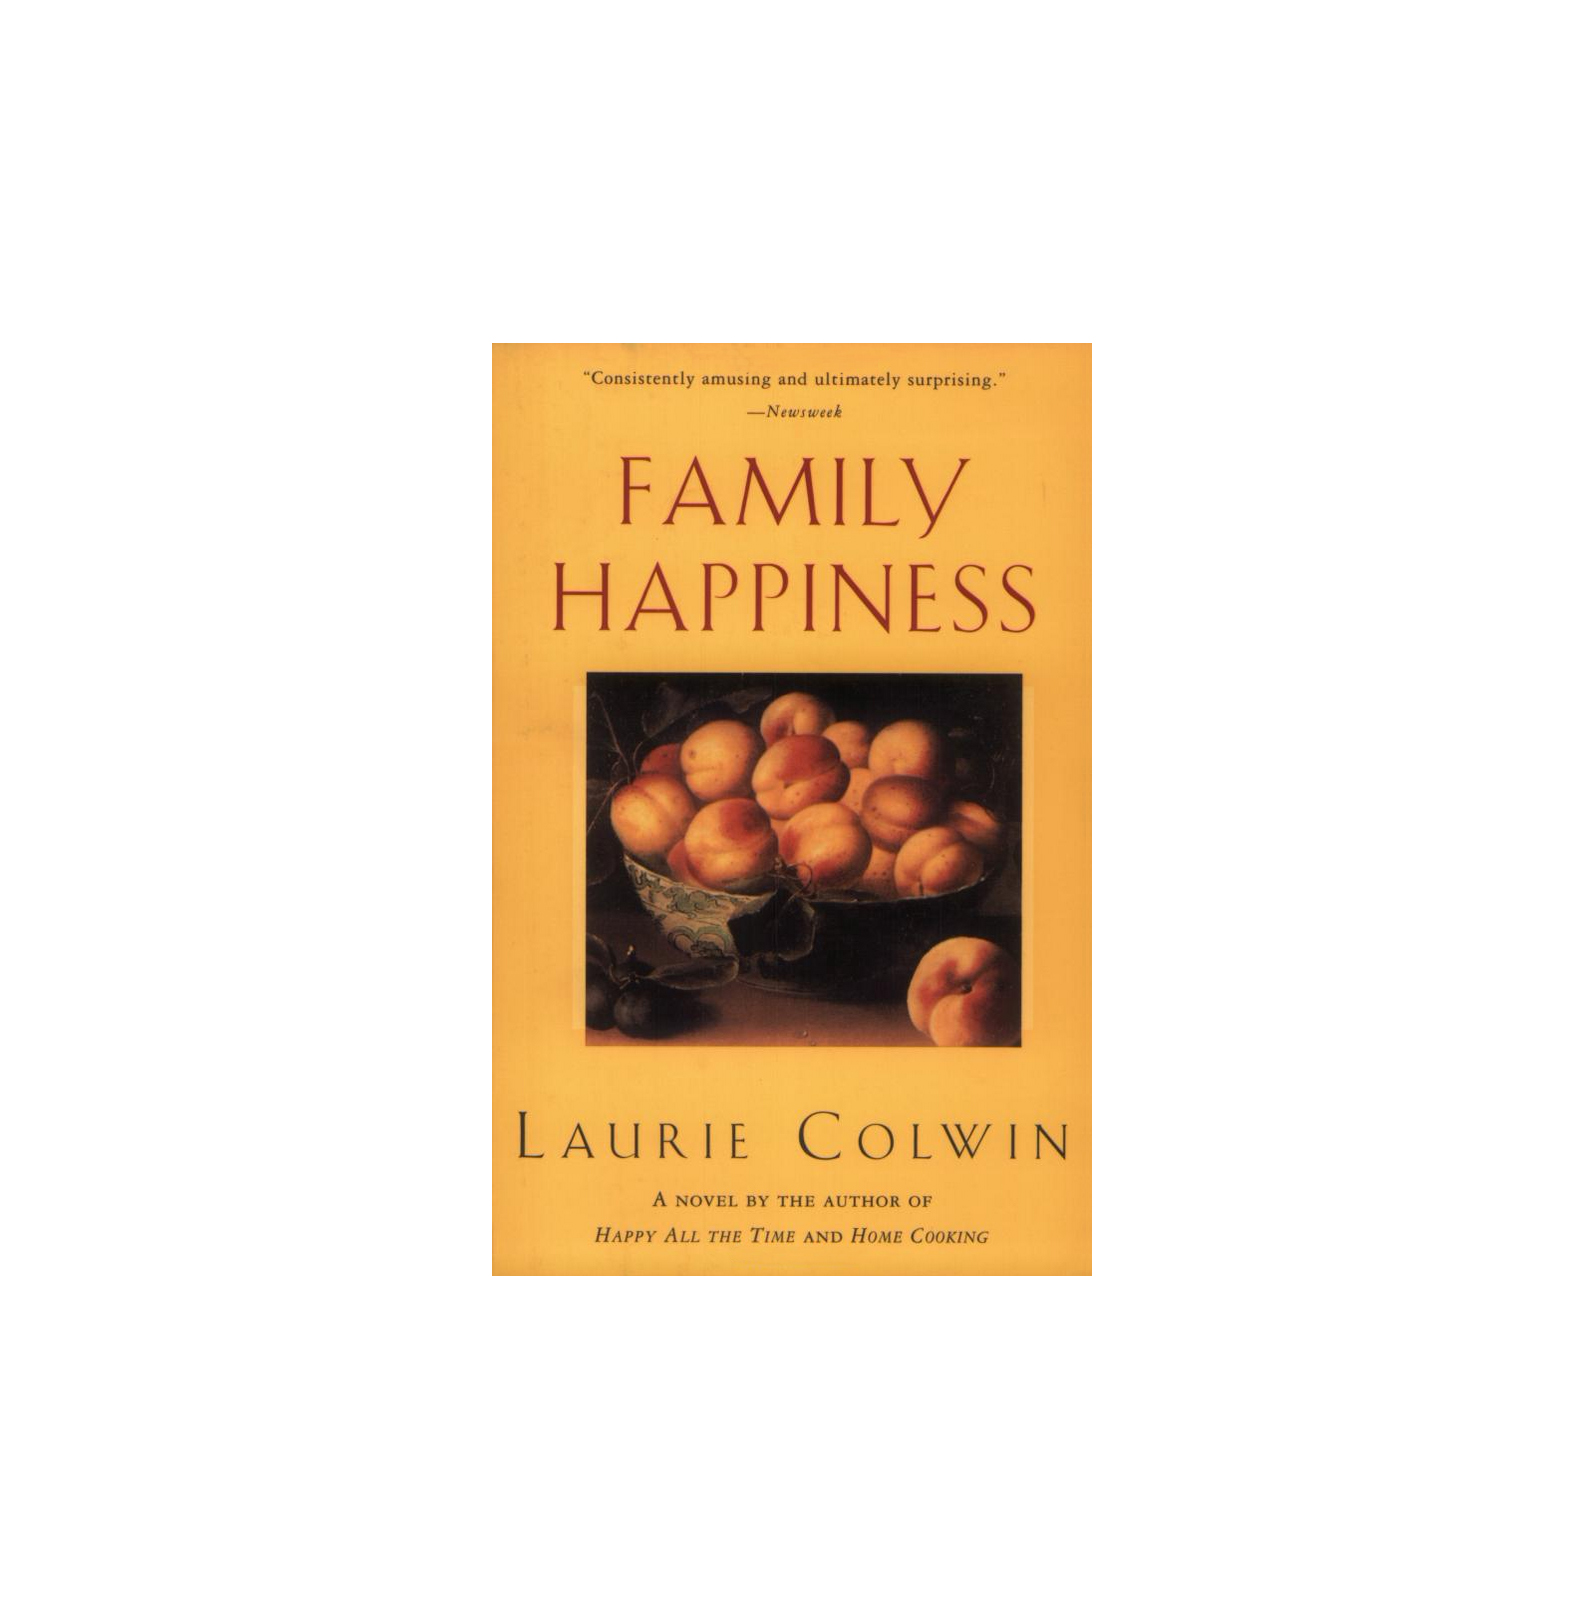 Family Happiness, by Laurie Colwin